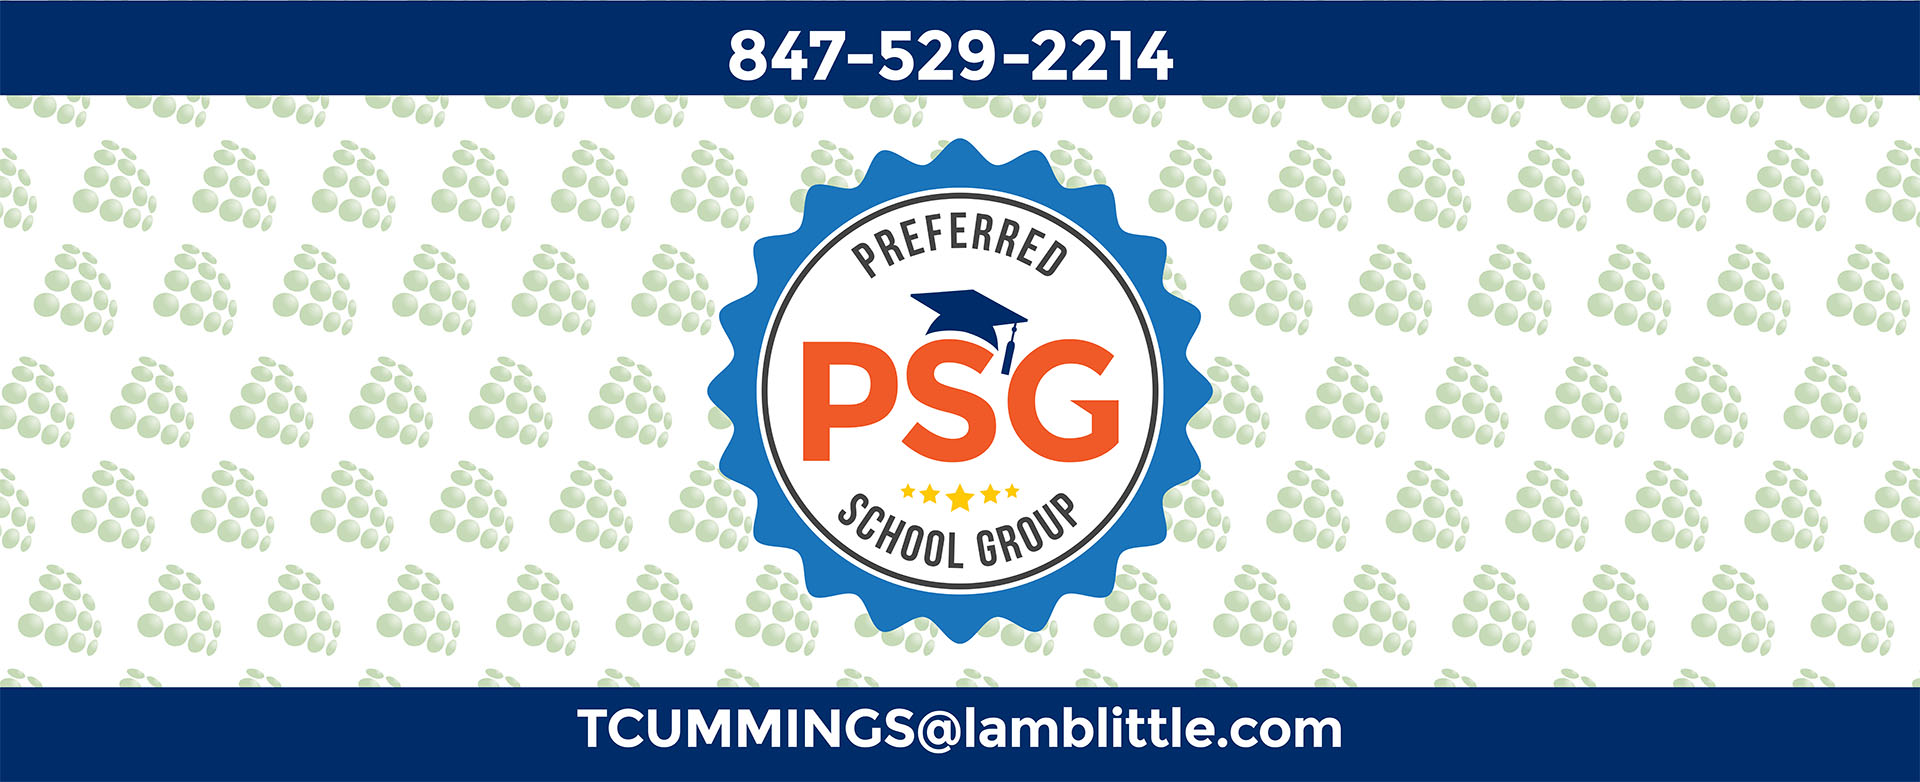 School Insurance - PSG Preferred School Group Banner